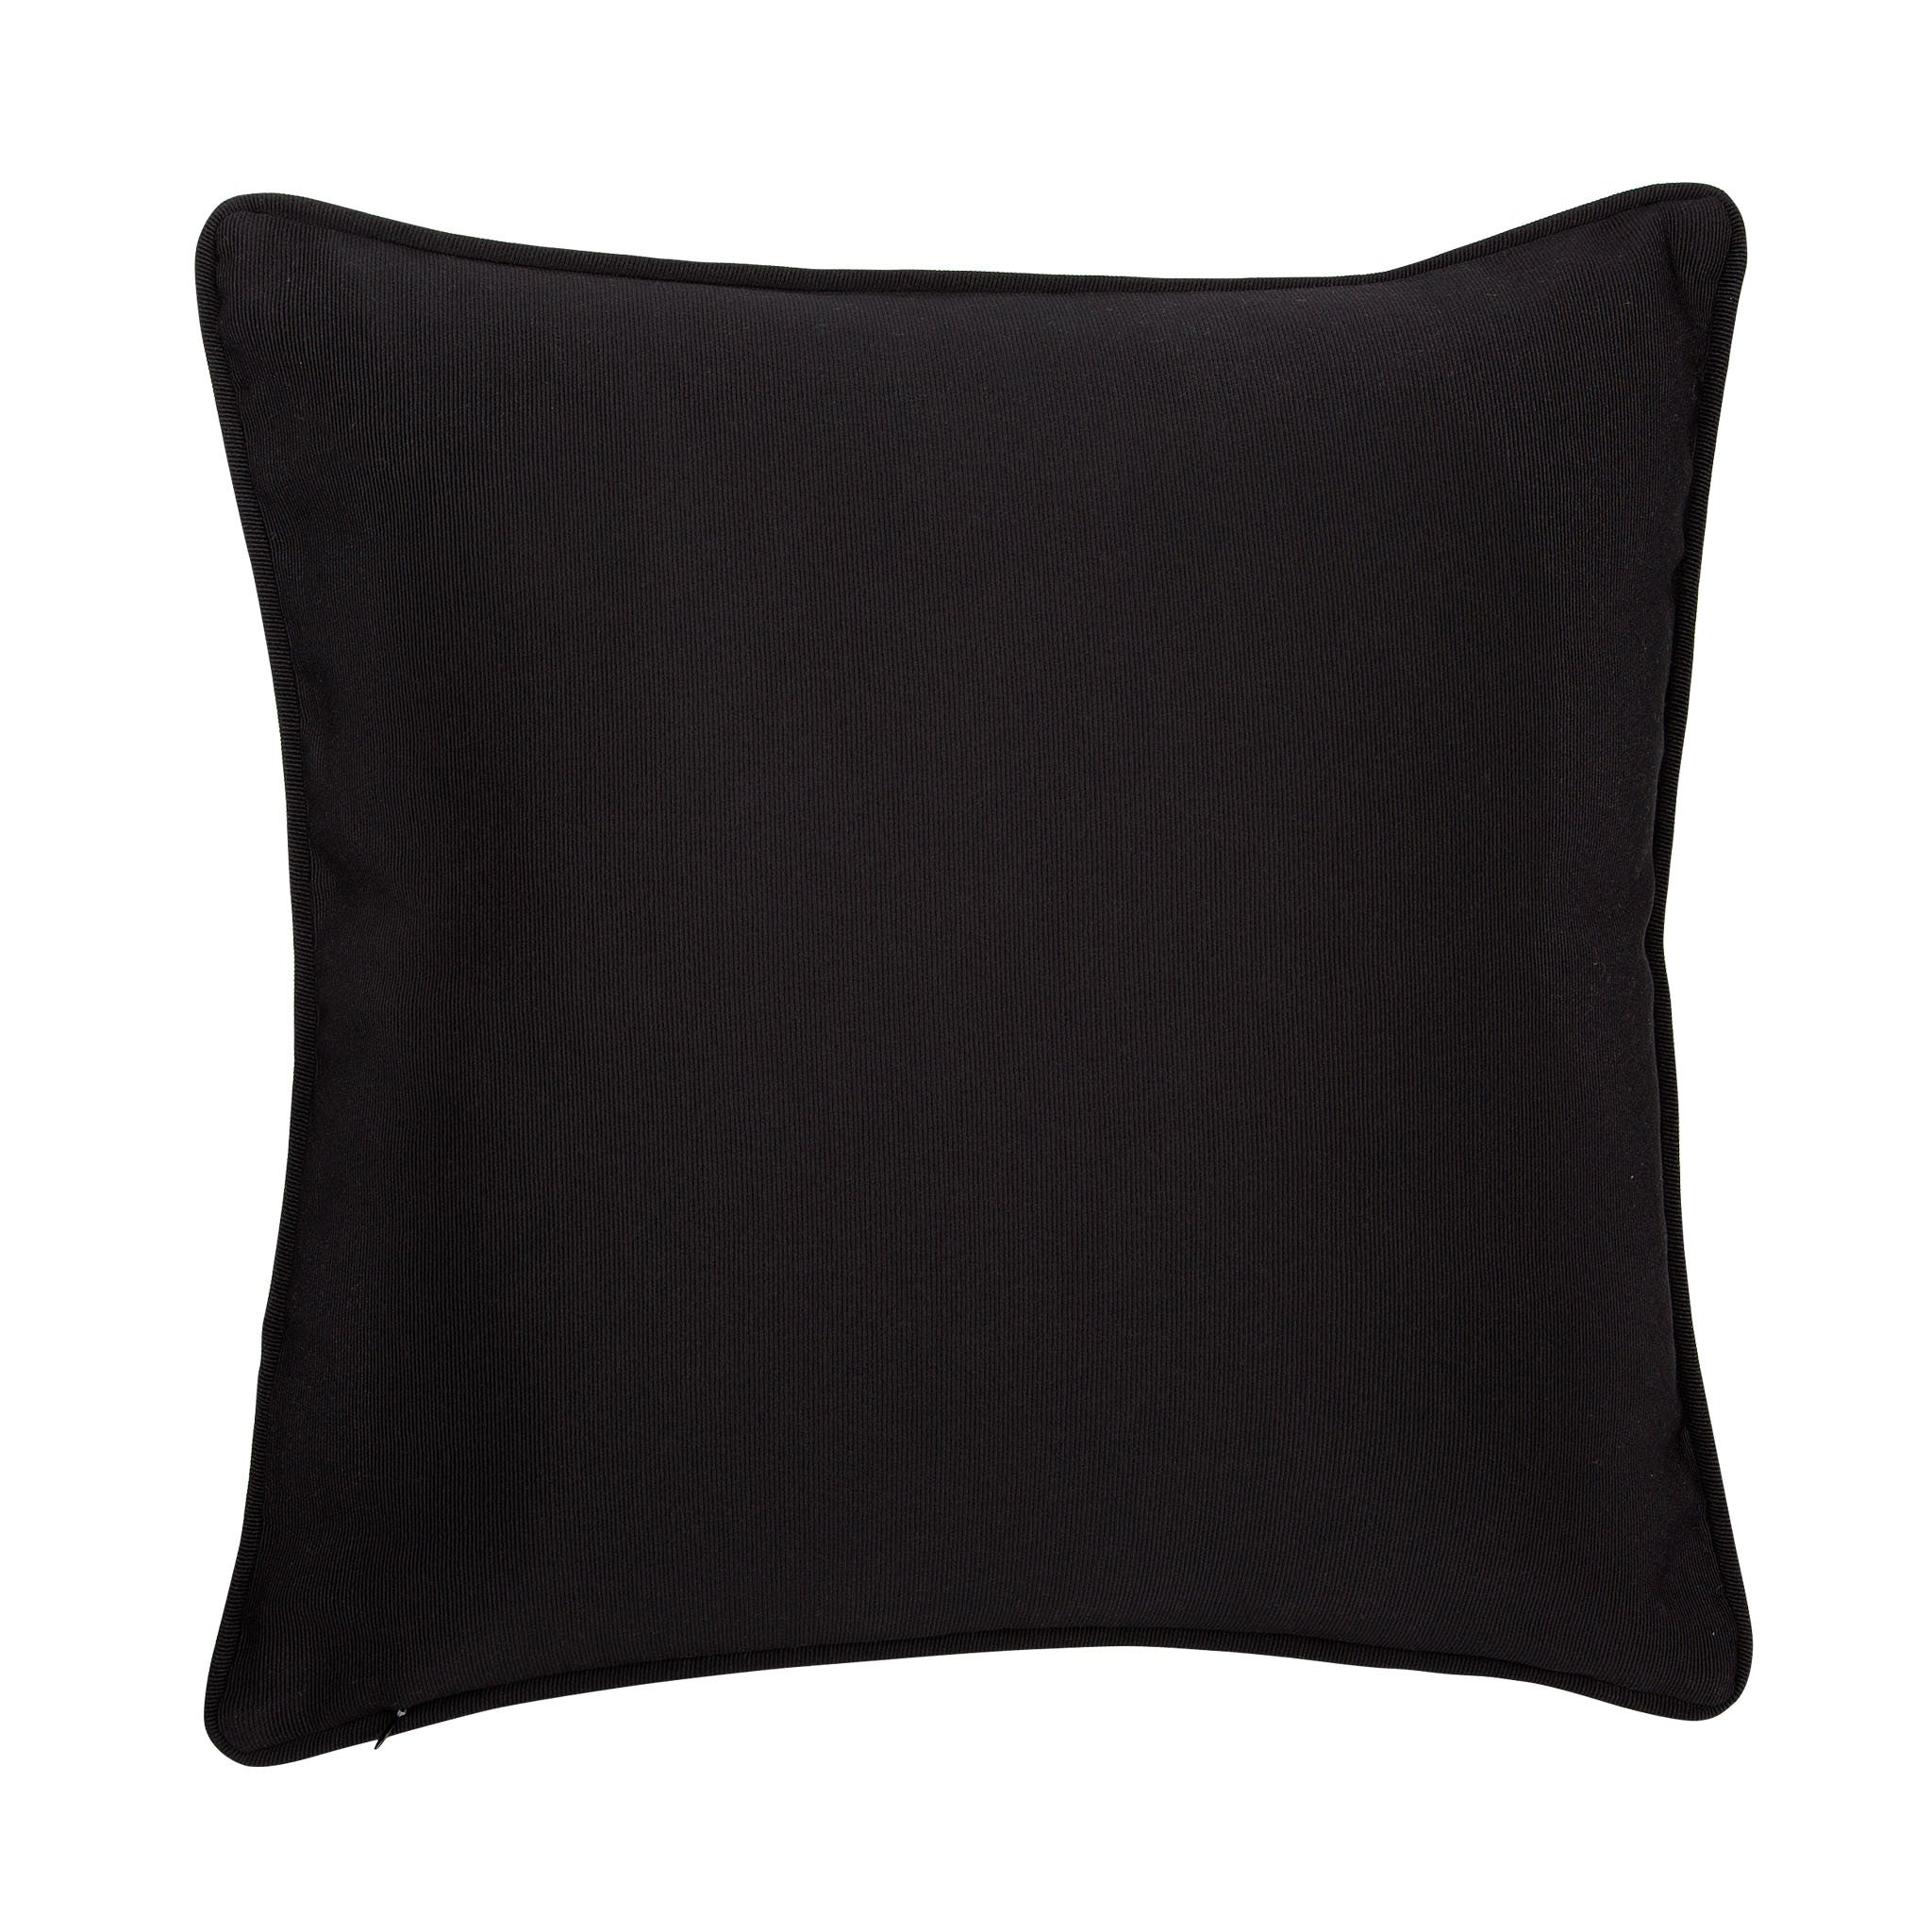 Cotton black & white reclining nude print cushion - Bivain - 3